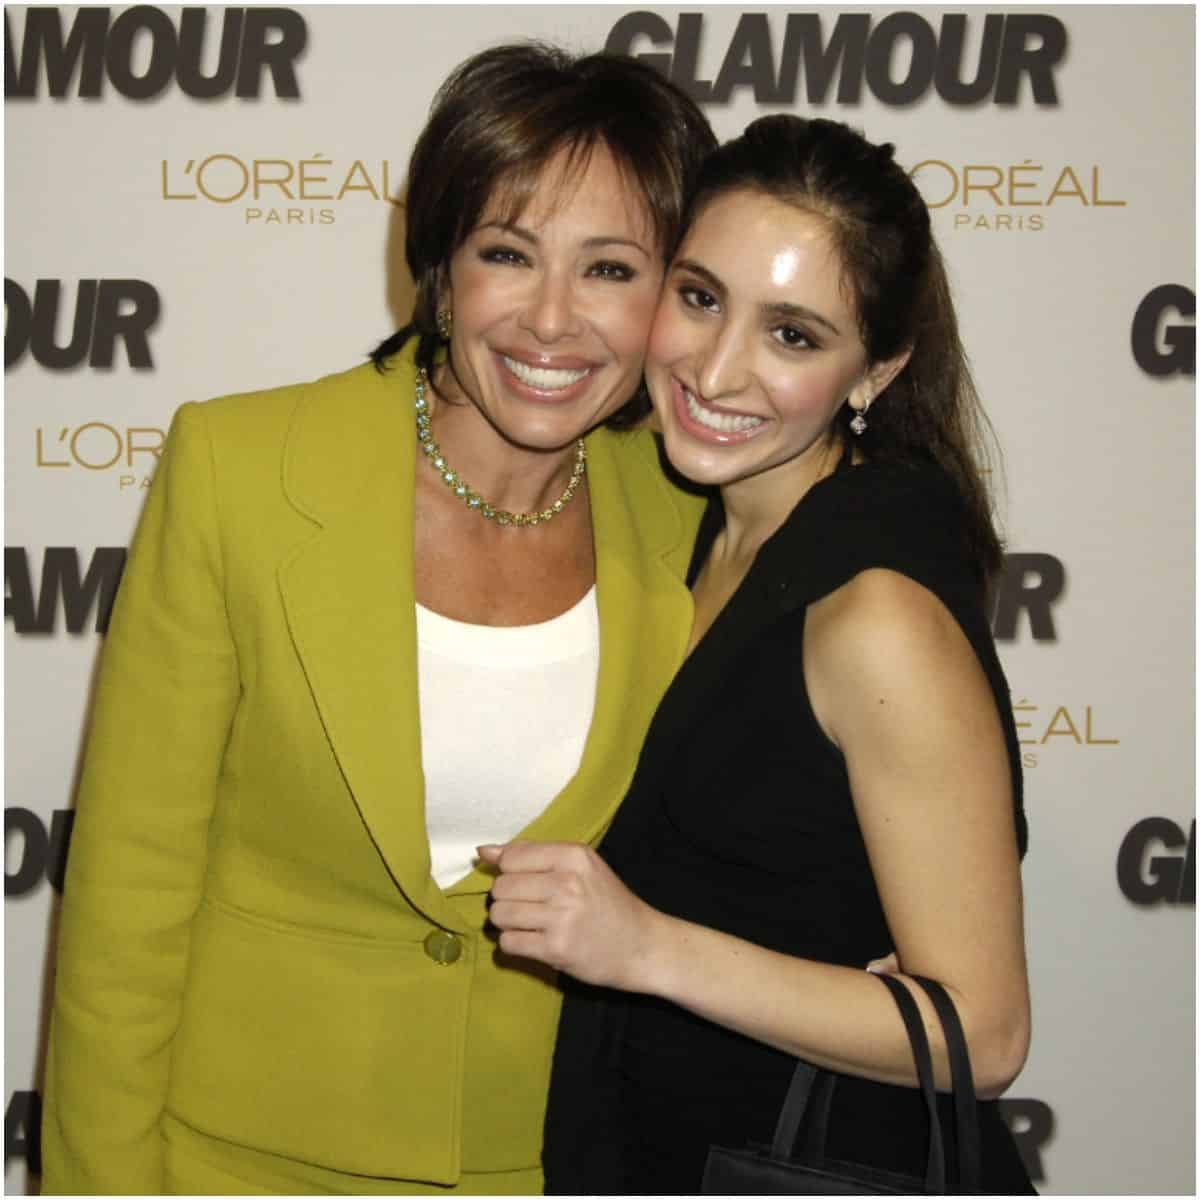 Jeanine Pirro and her daughter Cristine Pirro